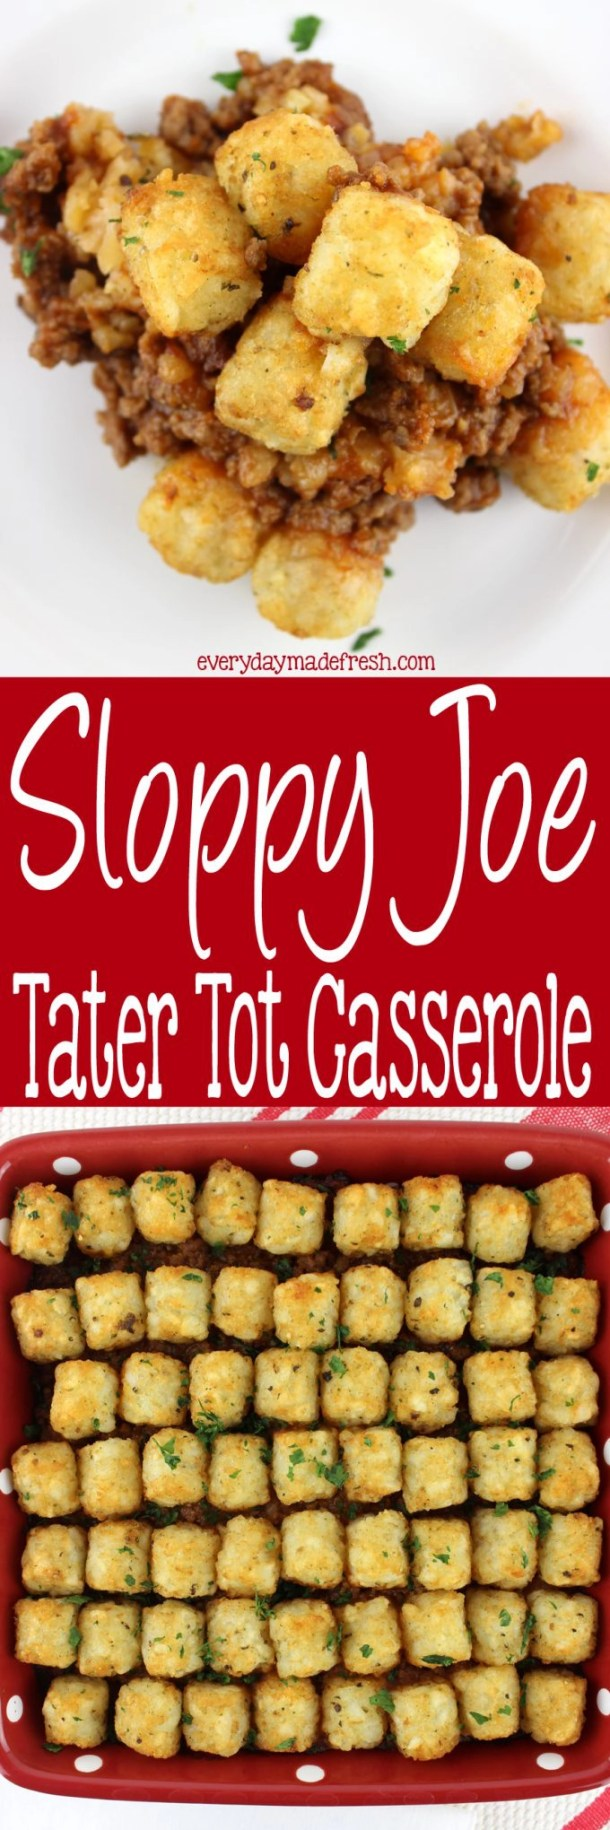 Who doesn't love a good sloppy joe? A easy to make homemade sloppy joe sauce makes this Sloppy Joe Tater Tot Casserole delicious and family pleasing! | Everydaymadefresh.com